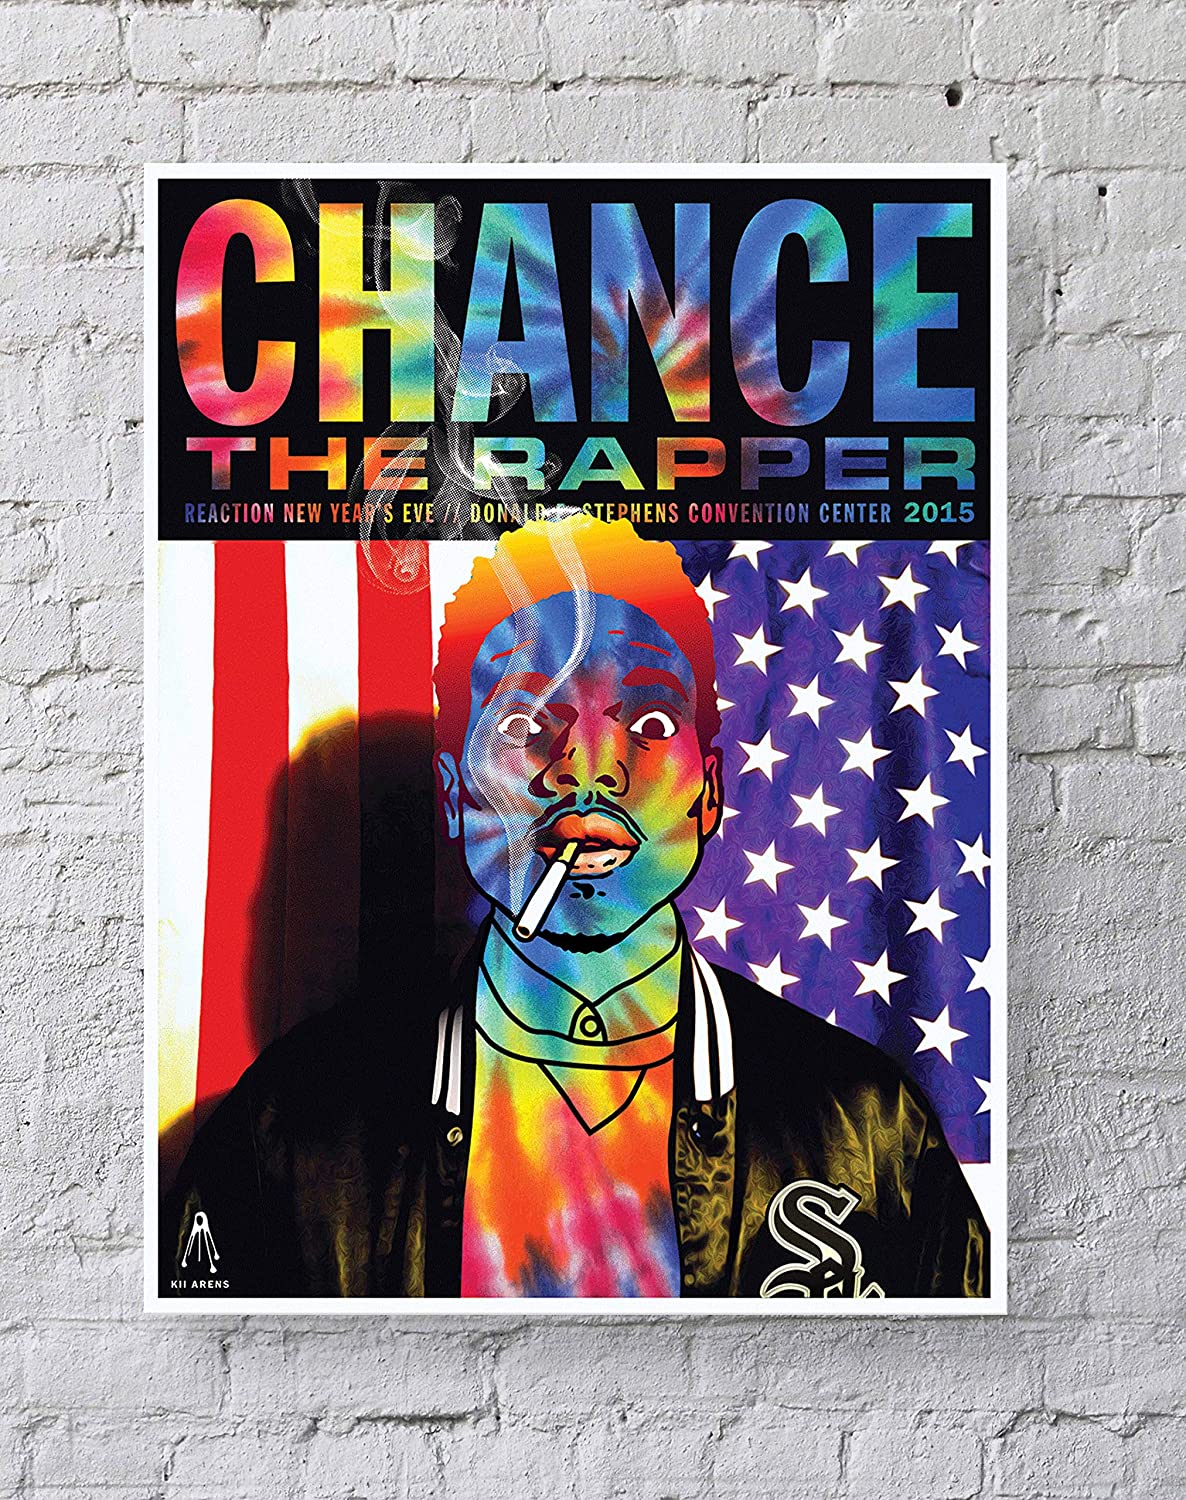 Amazon Com Meimeiz Chance The Rapper Poster Standard Size 18 Inches By 24 Inches Chance The Rapper Acid Rap Posters Wall Poster Print Posters Prints